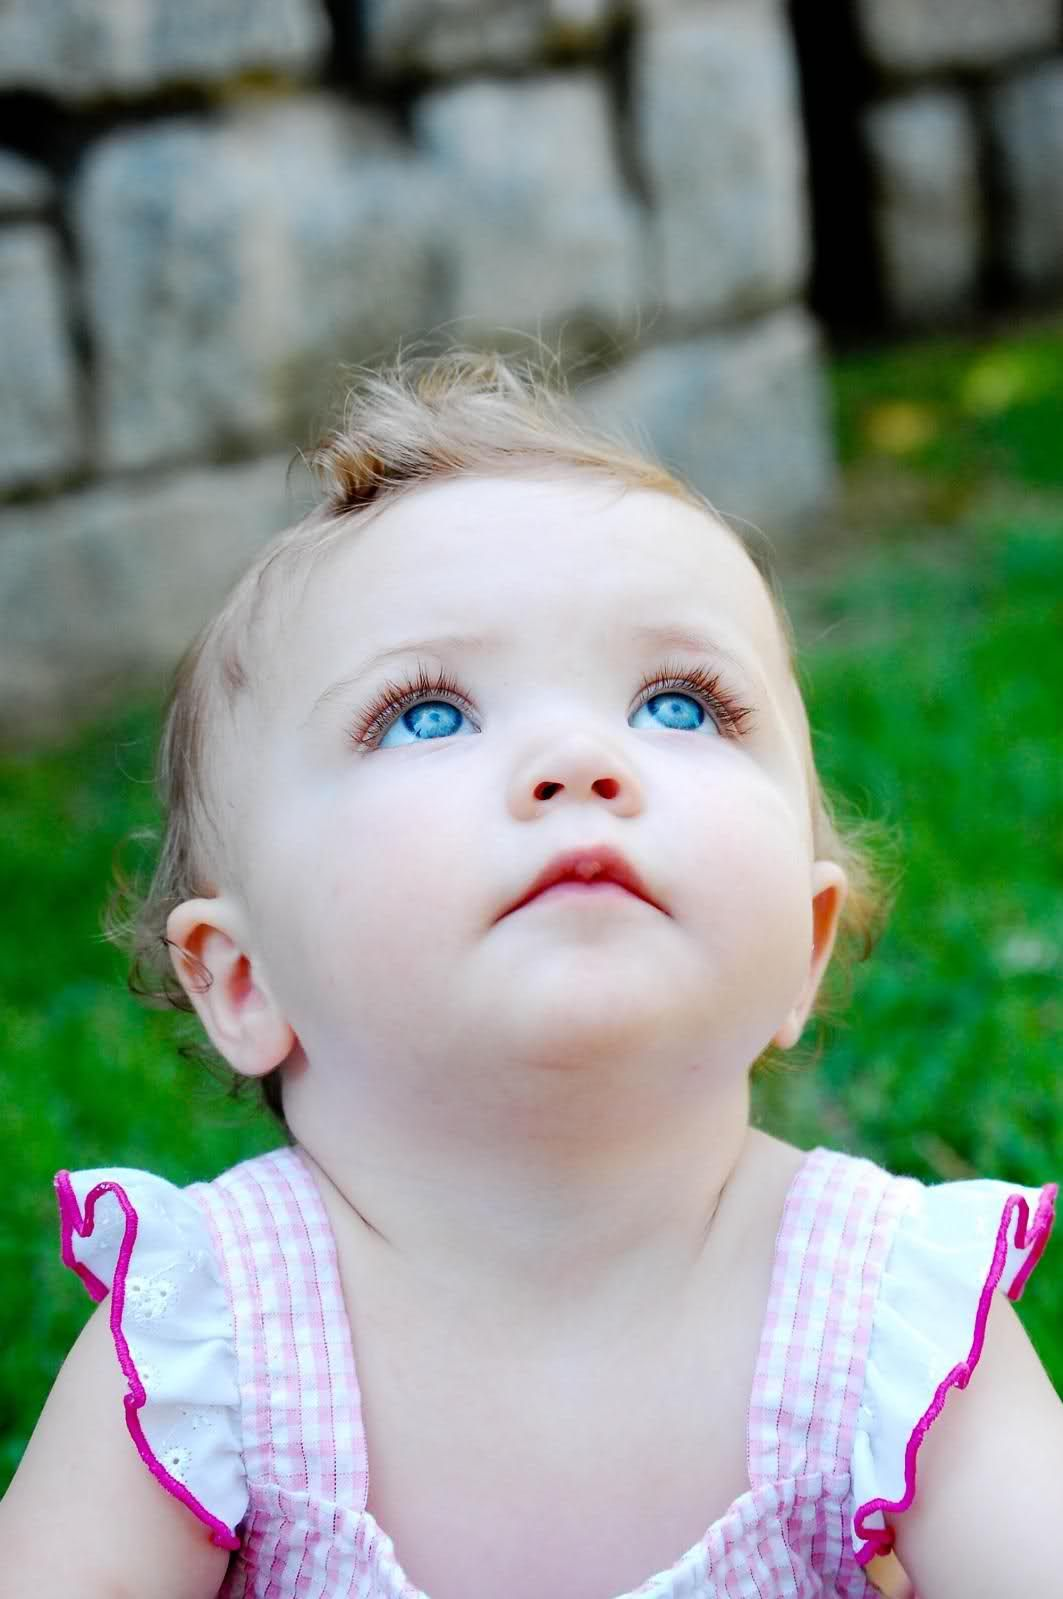 beautiful baby girl picture with cute expression | babies of all